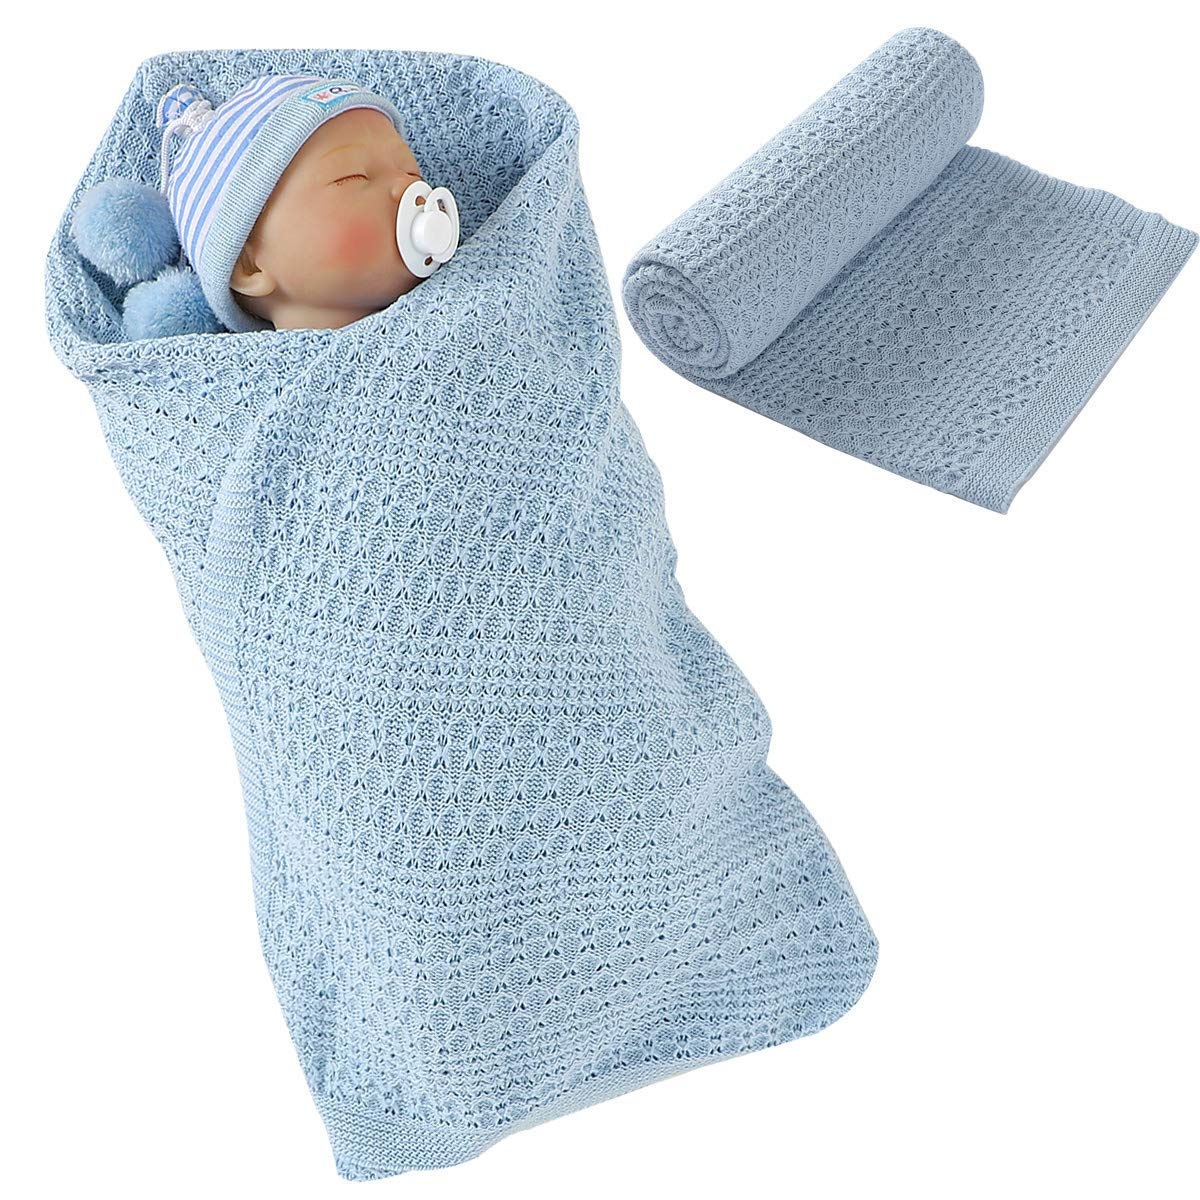 Baby Blanket, Newborn Toddler Cotton Knit Swaddle Blanket Stroller Wrap Cover for Baby Boys Girls 39.4x31.5in